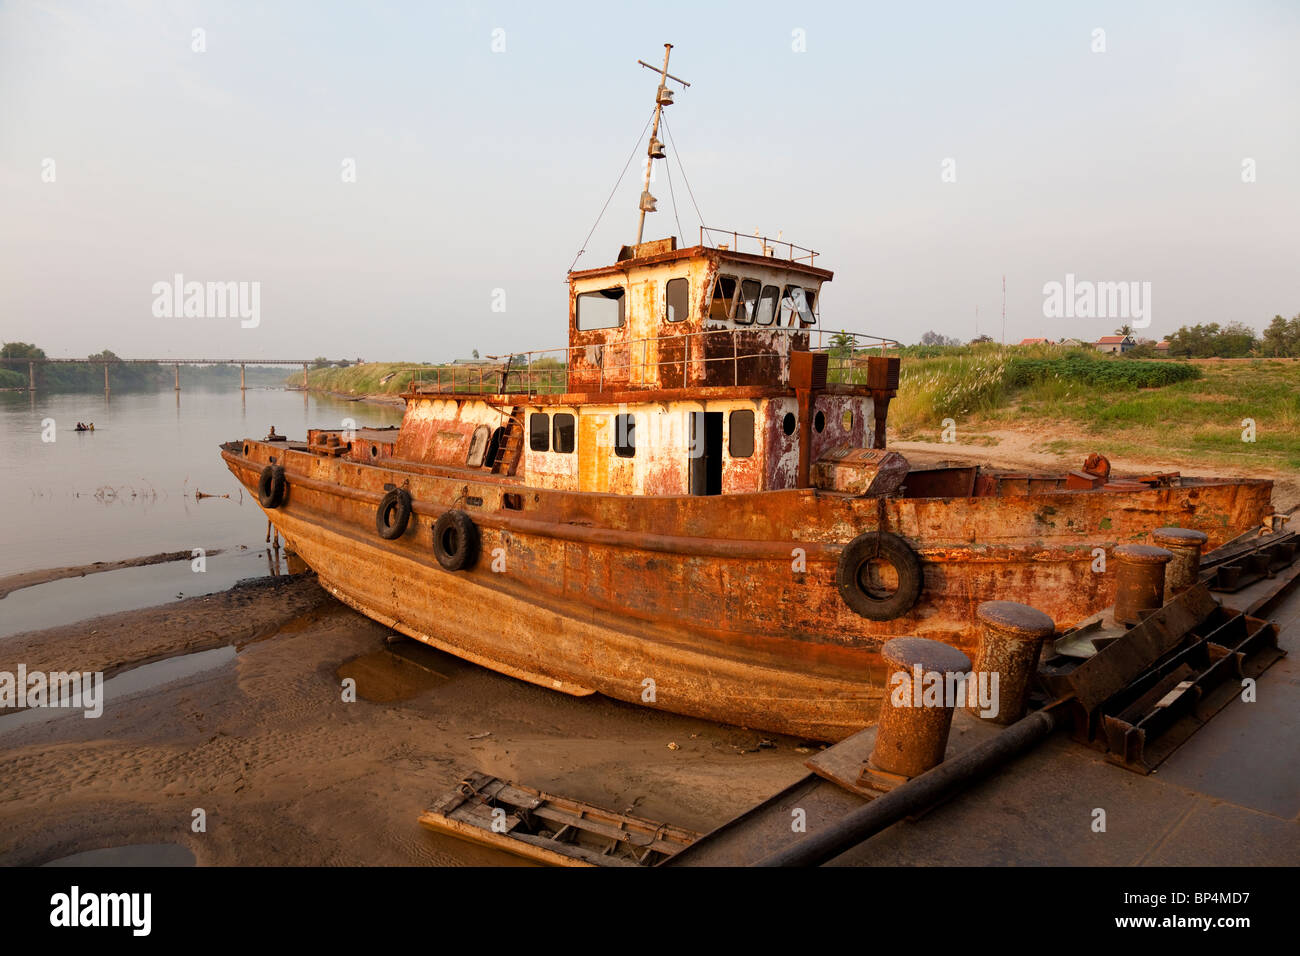 An abandoned ship getting disassembled for scrap metal on the Mekong- Kandal Province, Cambodia - Stock Image